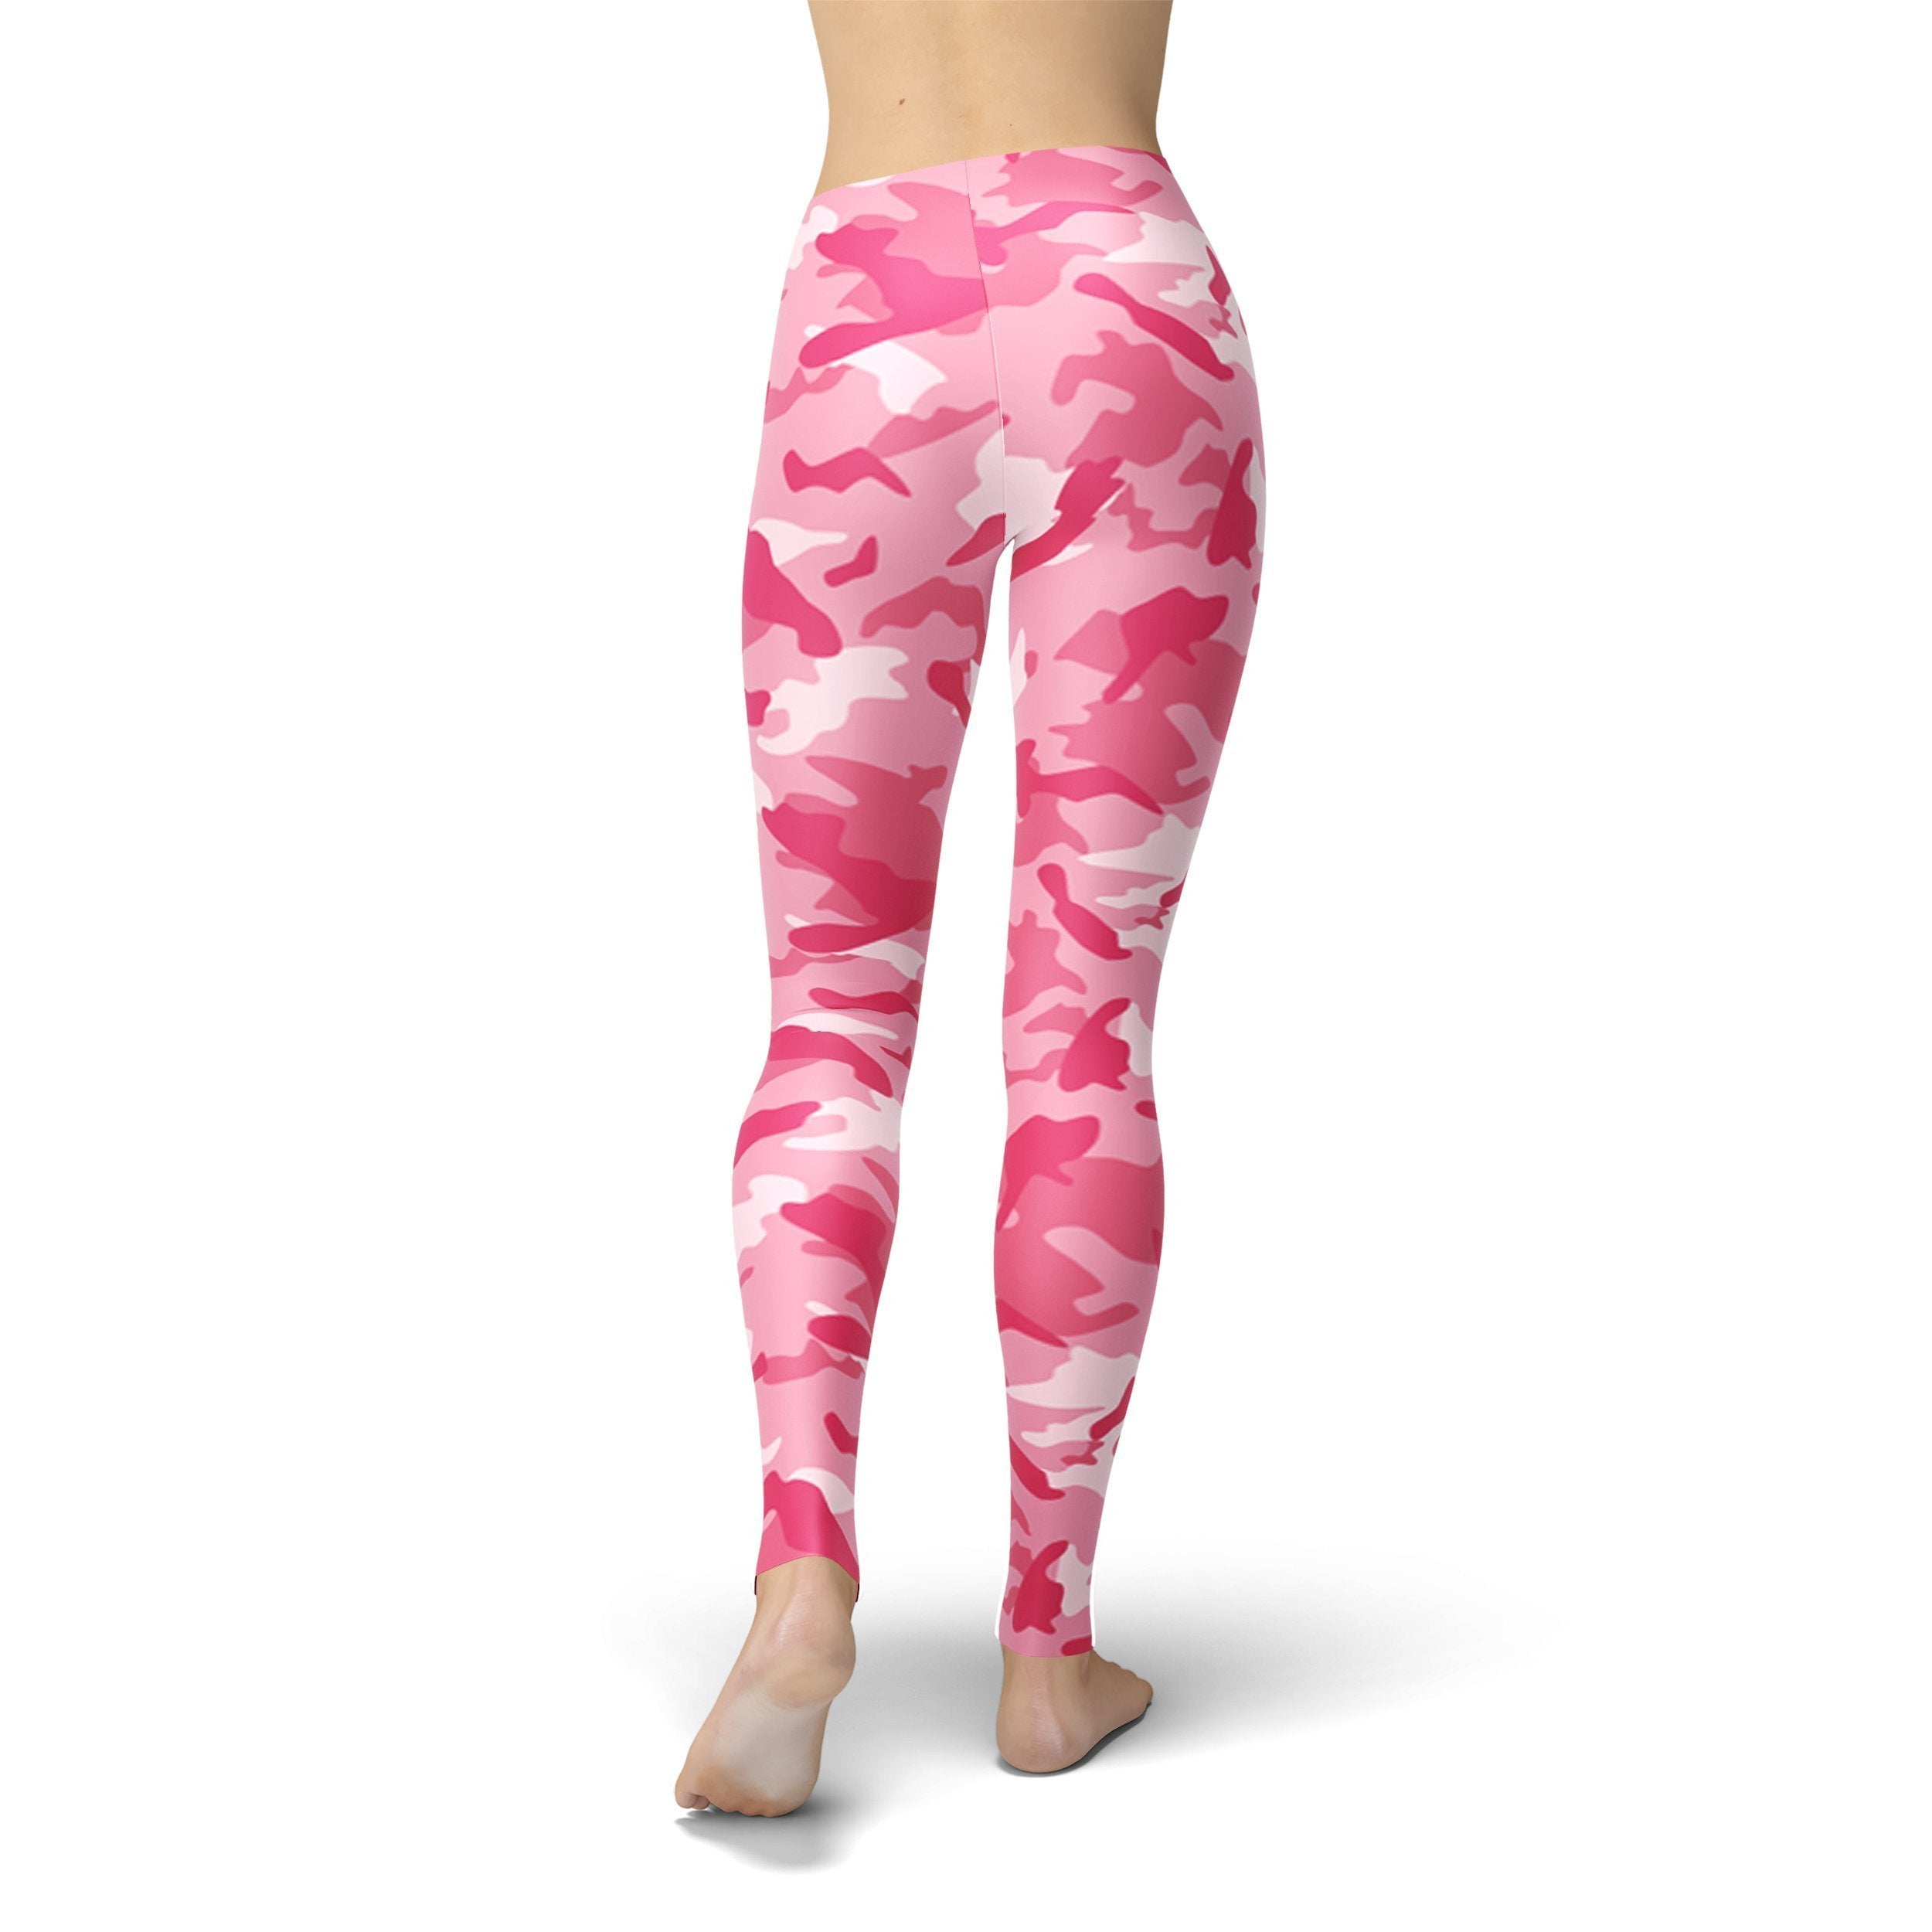 Jean Pink Camo